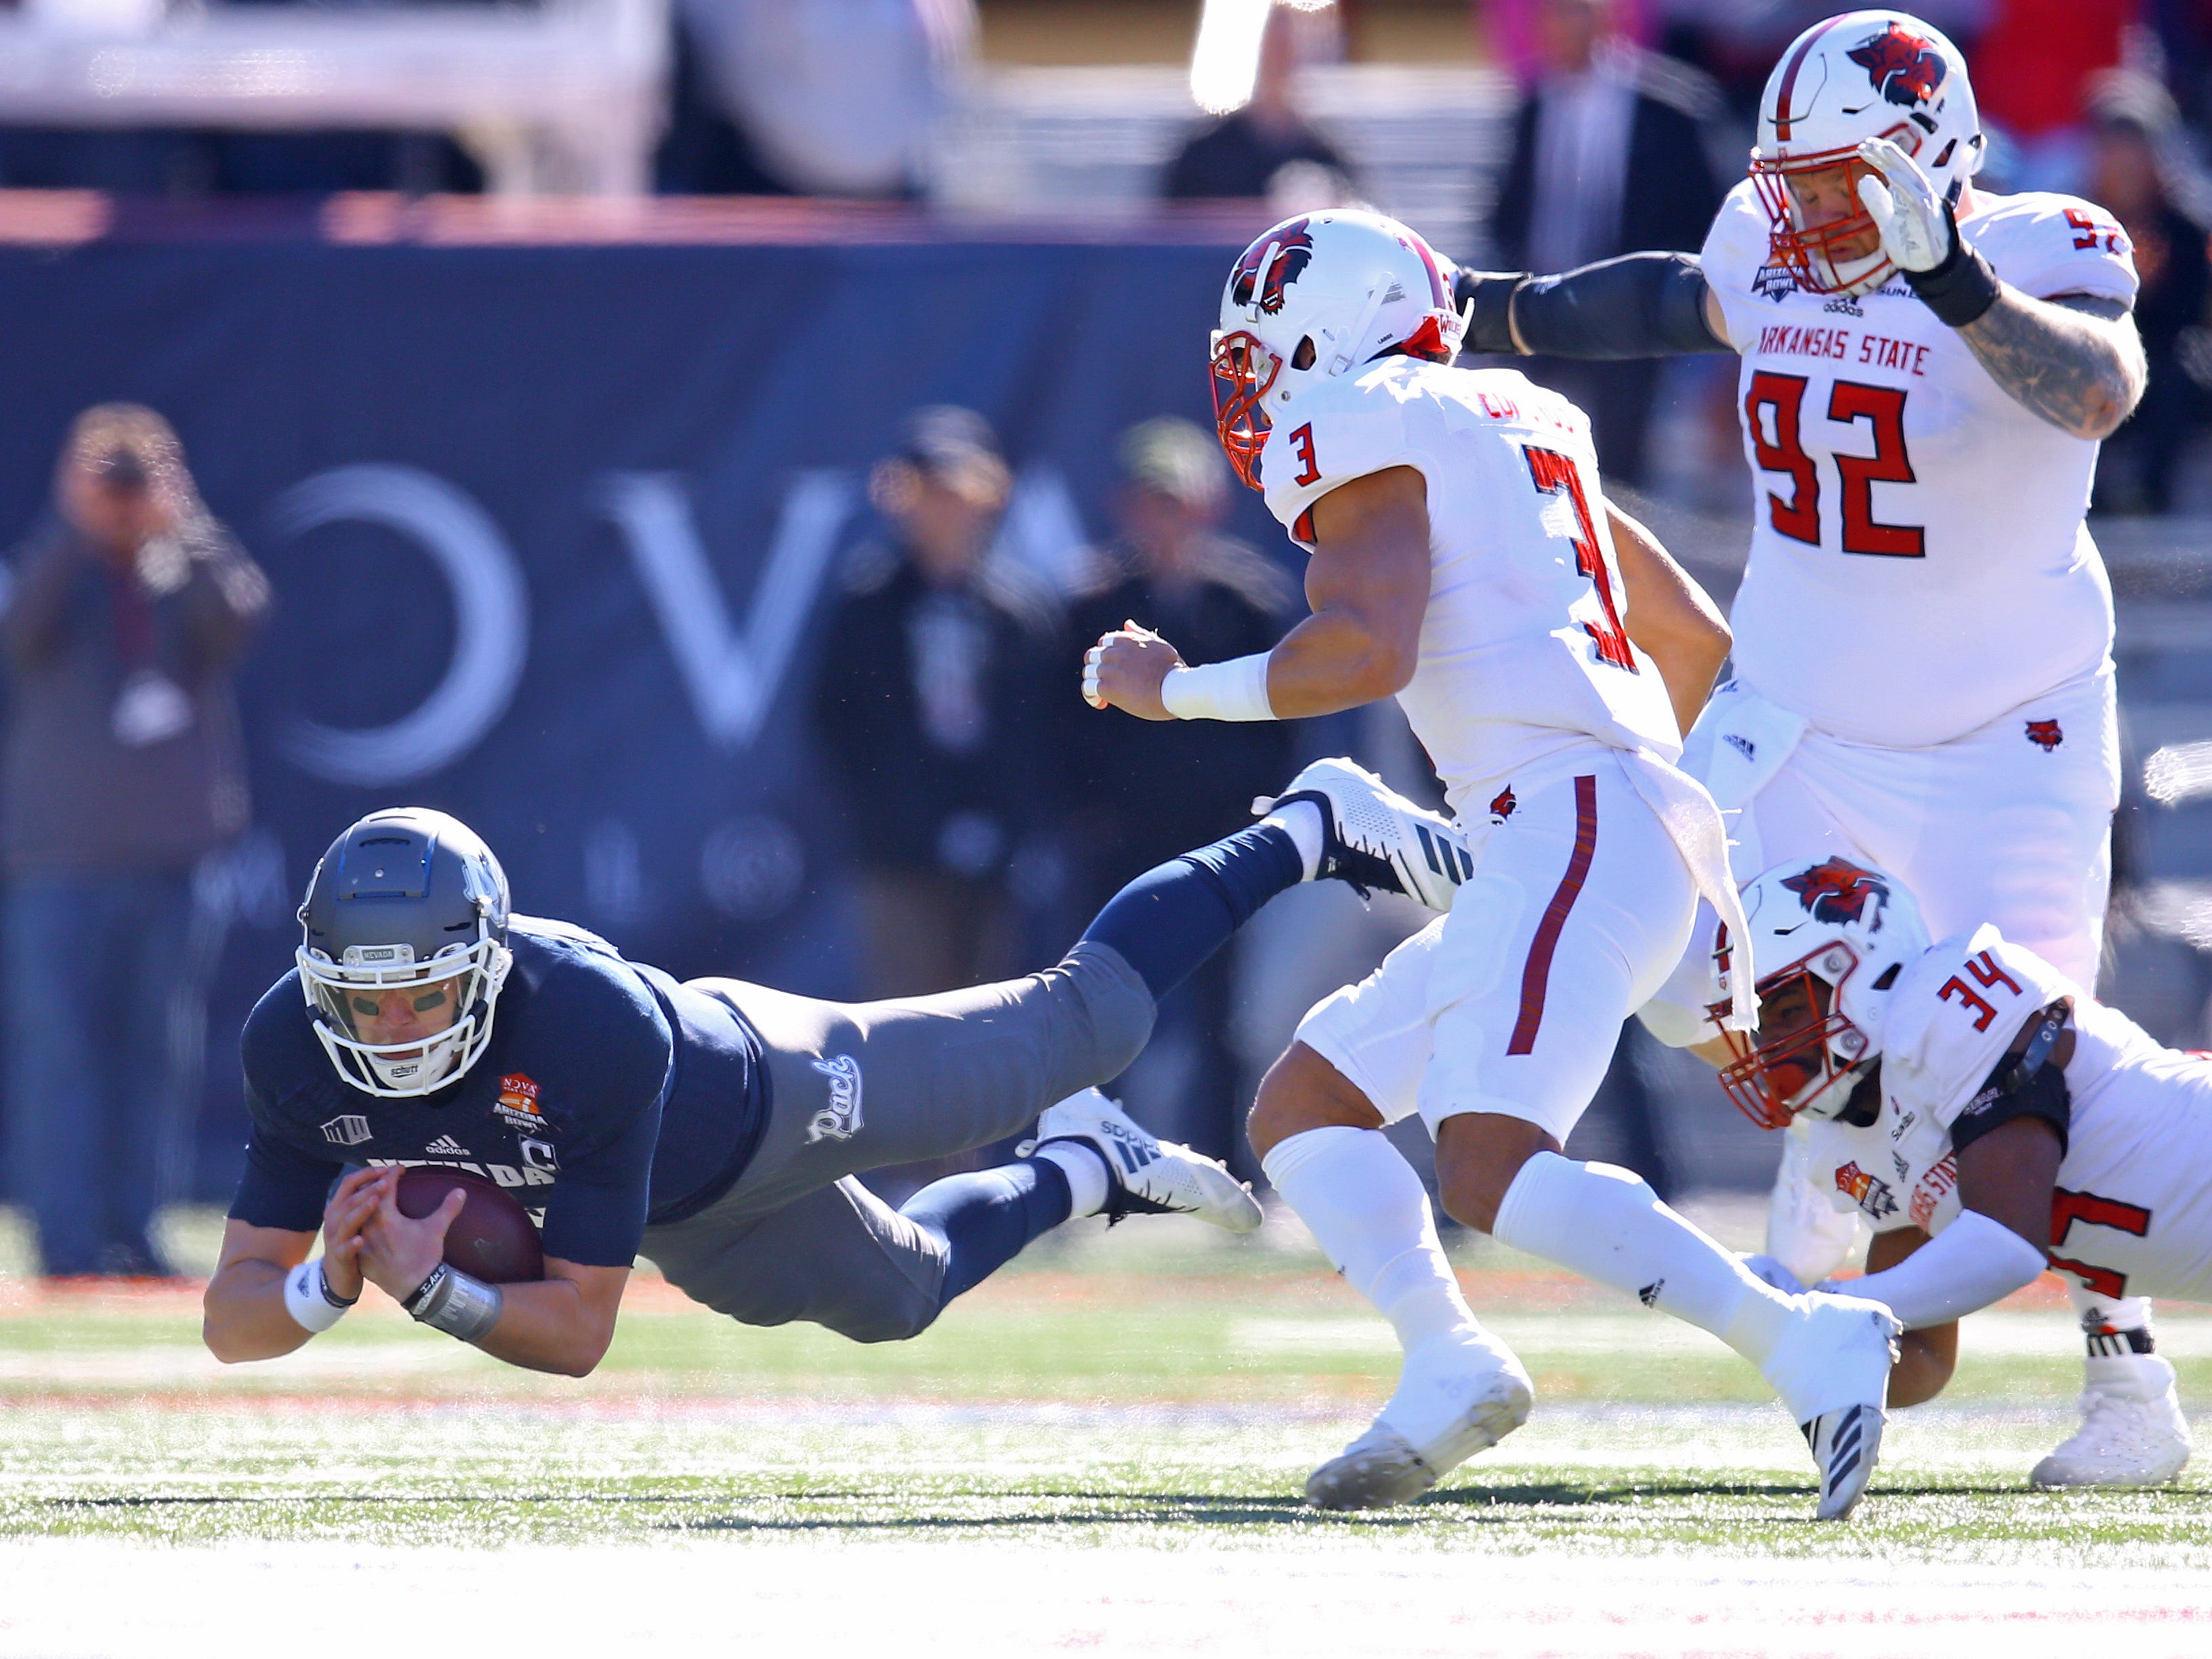 Dec 29, 2018; Tucson, AZ, USA; Nevada Wolf Pack quarterback Ty Gangi (6) dives for yardage against the Arkansas State Red Wolves in the first half of the 2018 Arizona Bowl at Arizona Stadium.